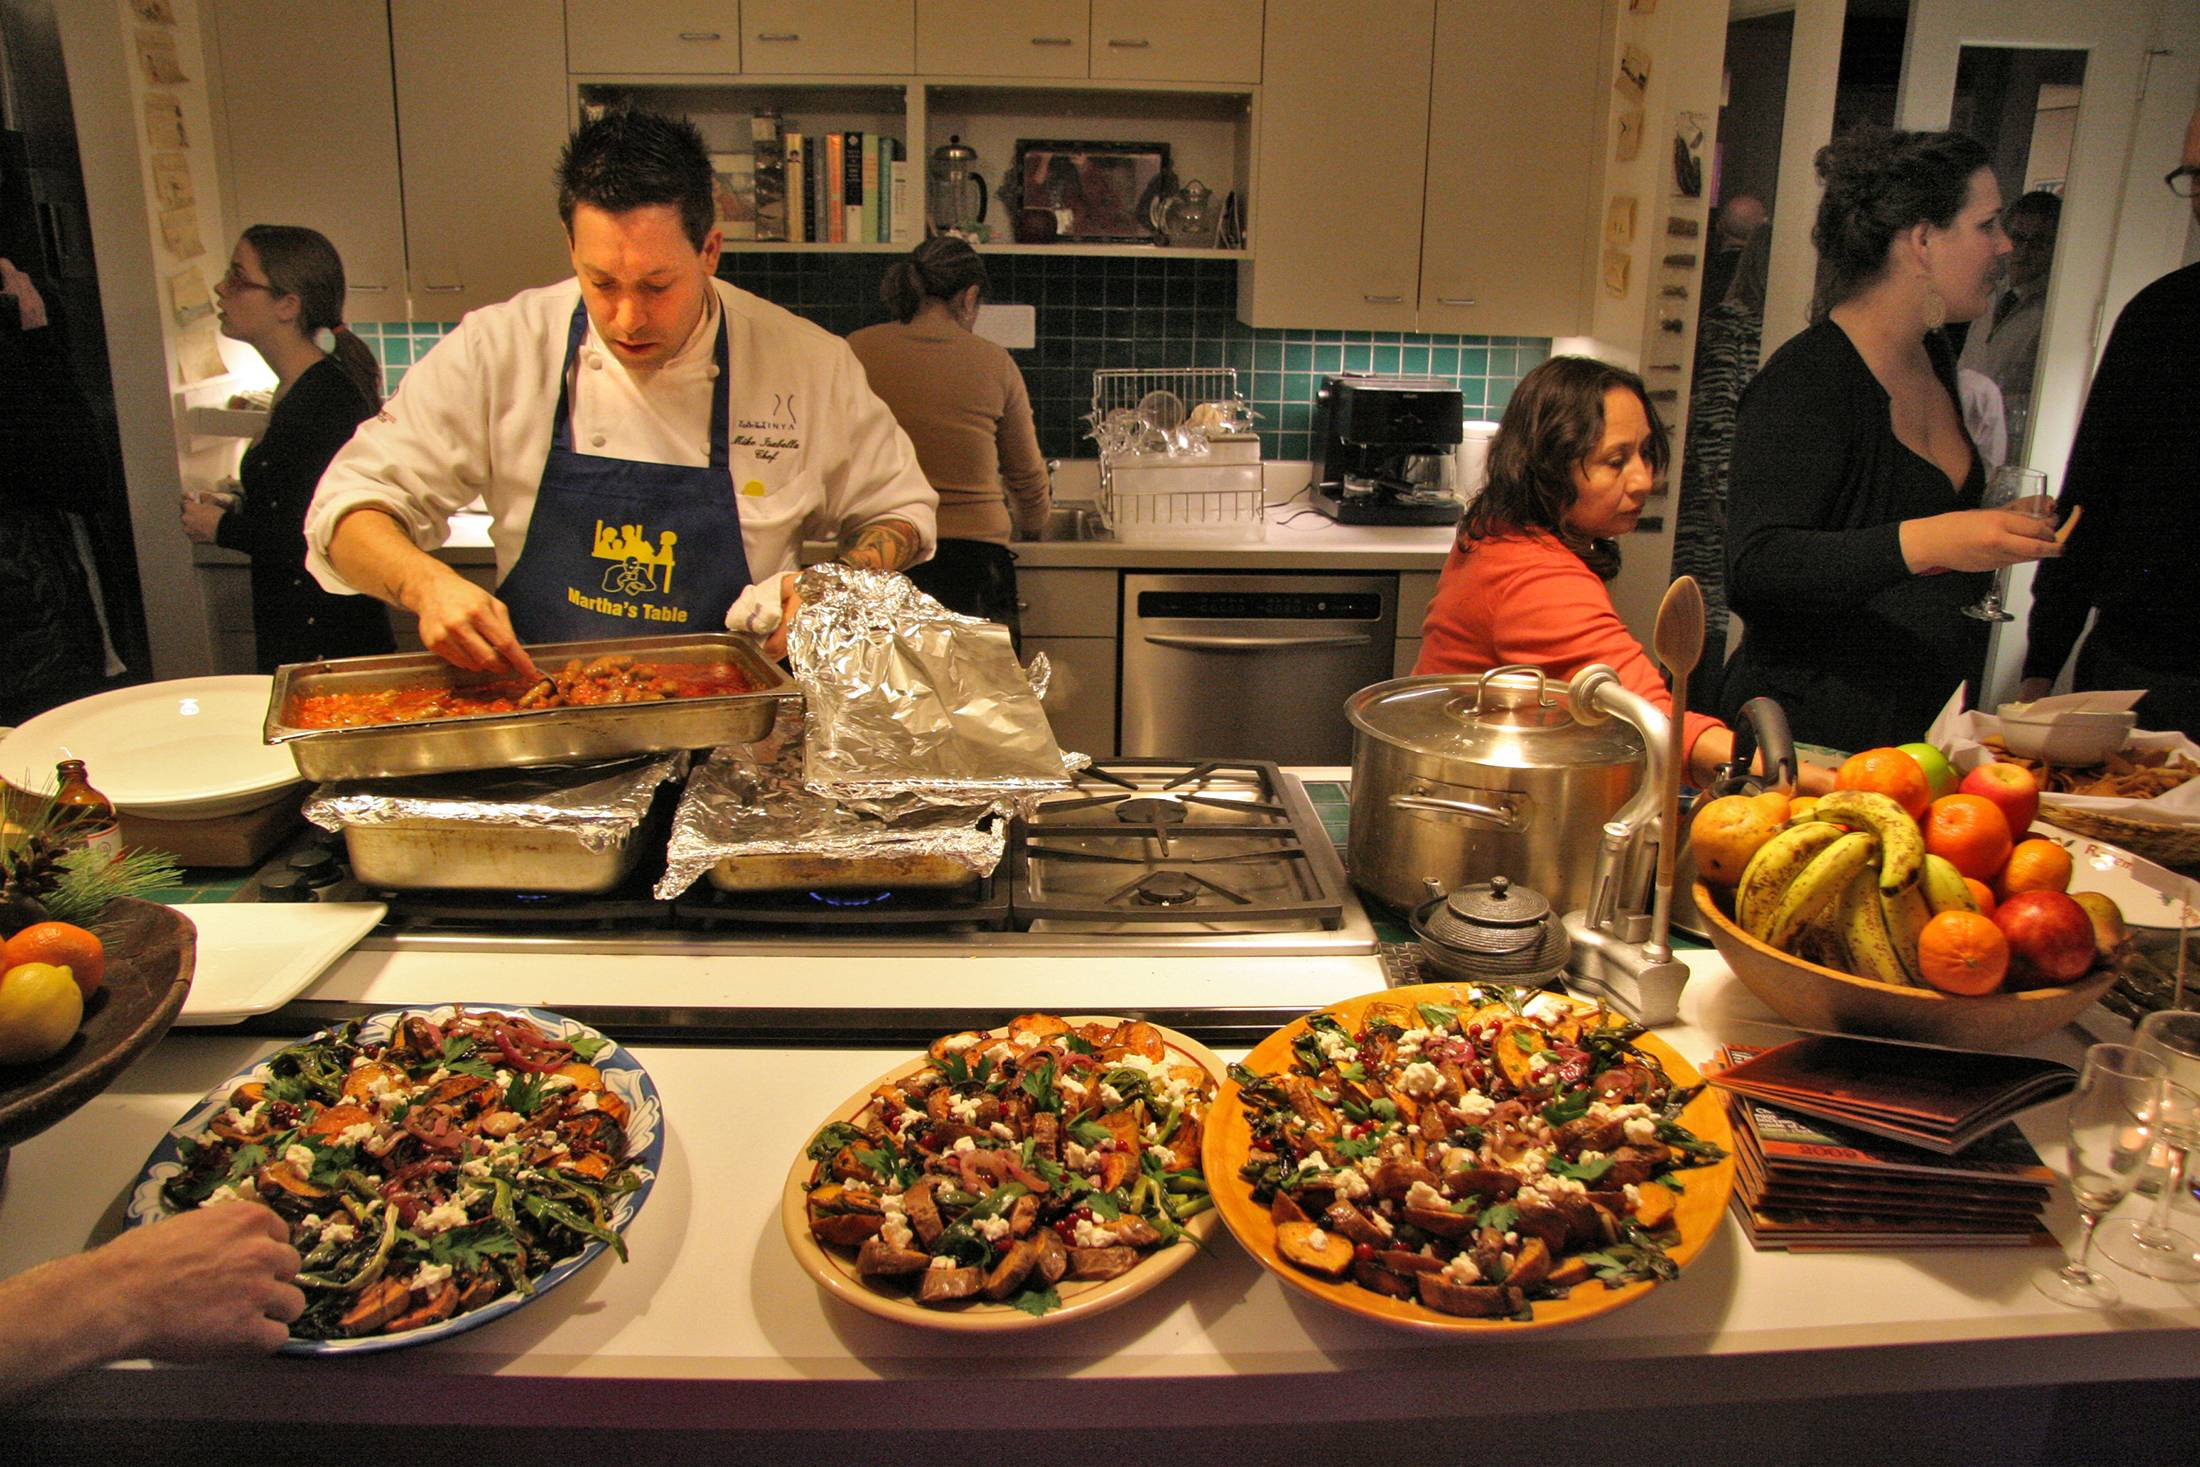 Chef Mike Isabella is a regular participant in Sips & Suppers, in which chefs cook in private Washington area homes as part of a charity fundraiser.